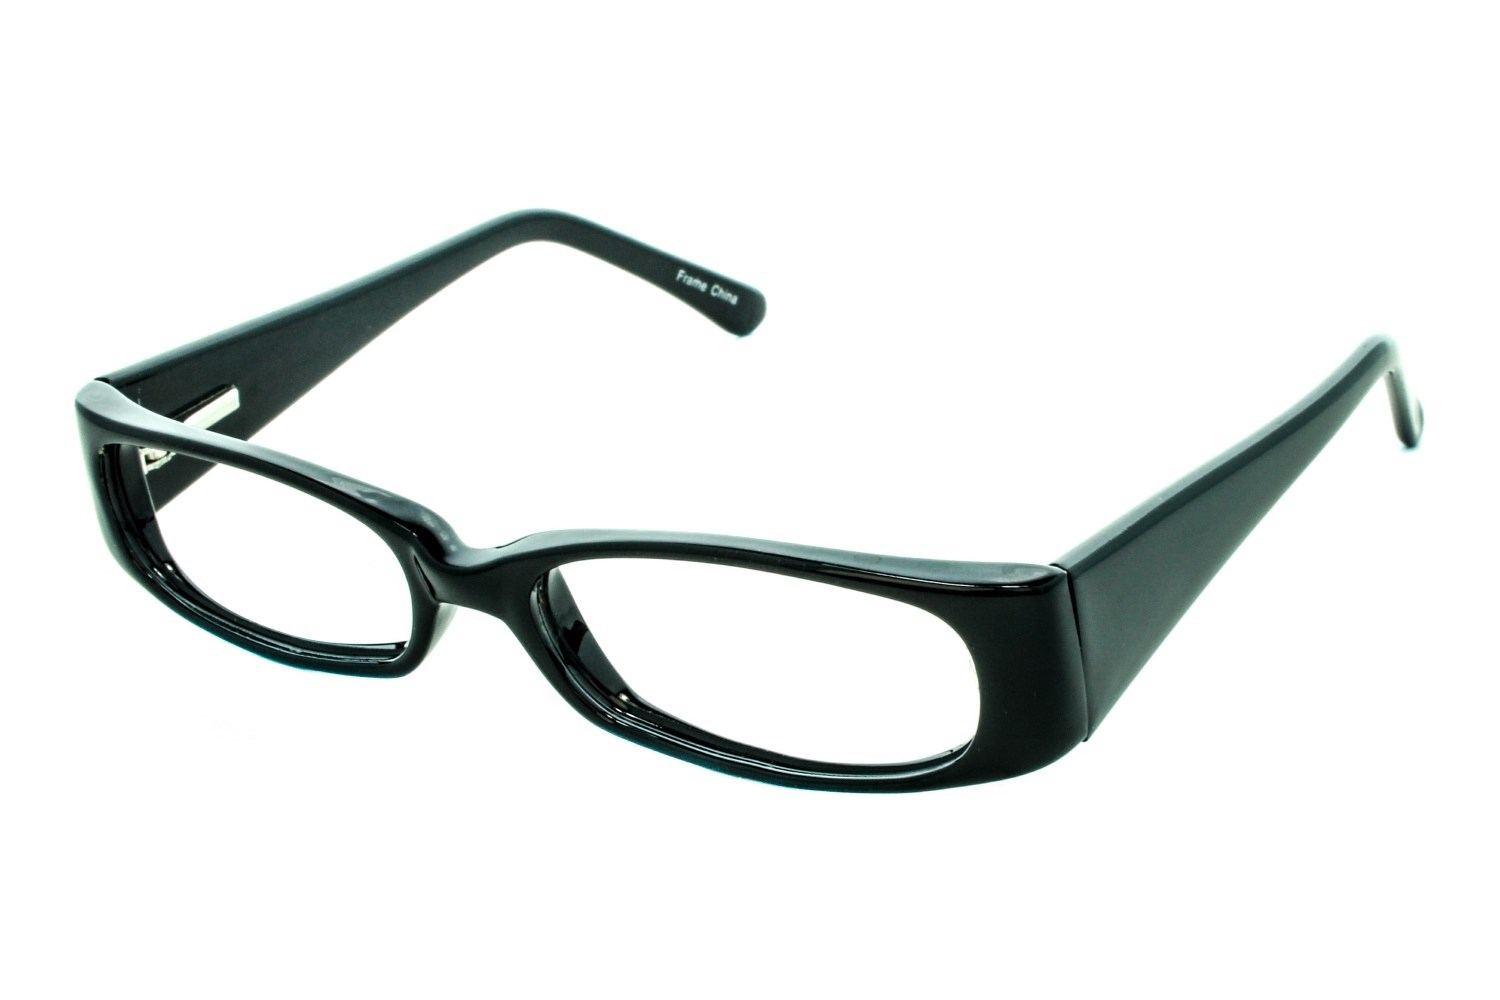 44dae0ffdf26 eyeglasses  Brand Lunettos Eyewear glasses and contact lenses superstore